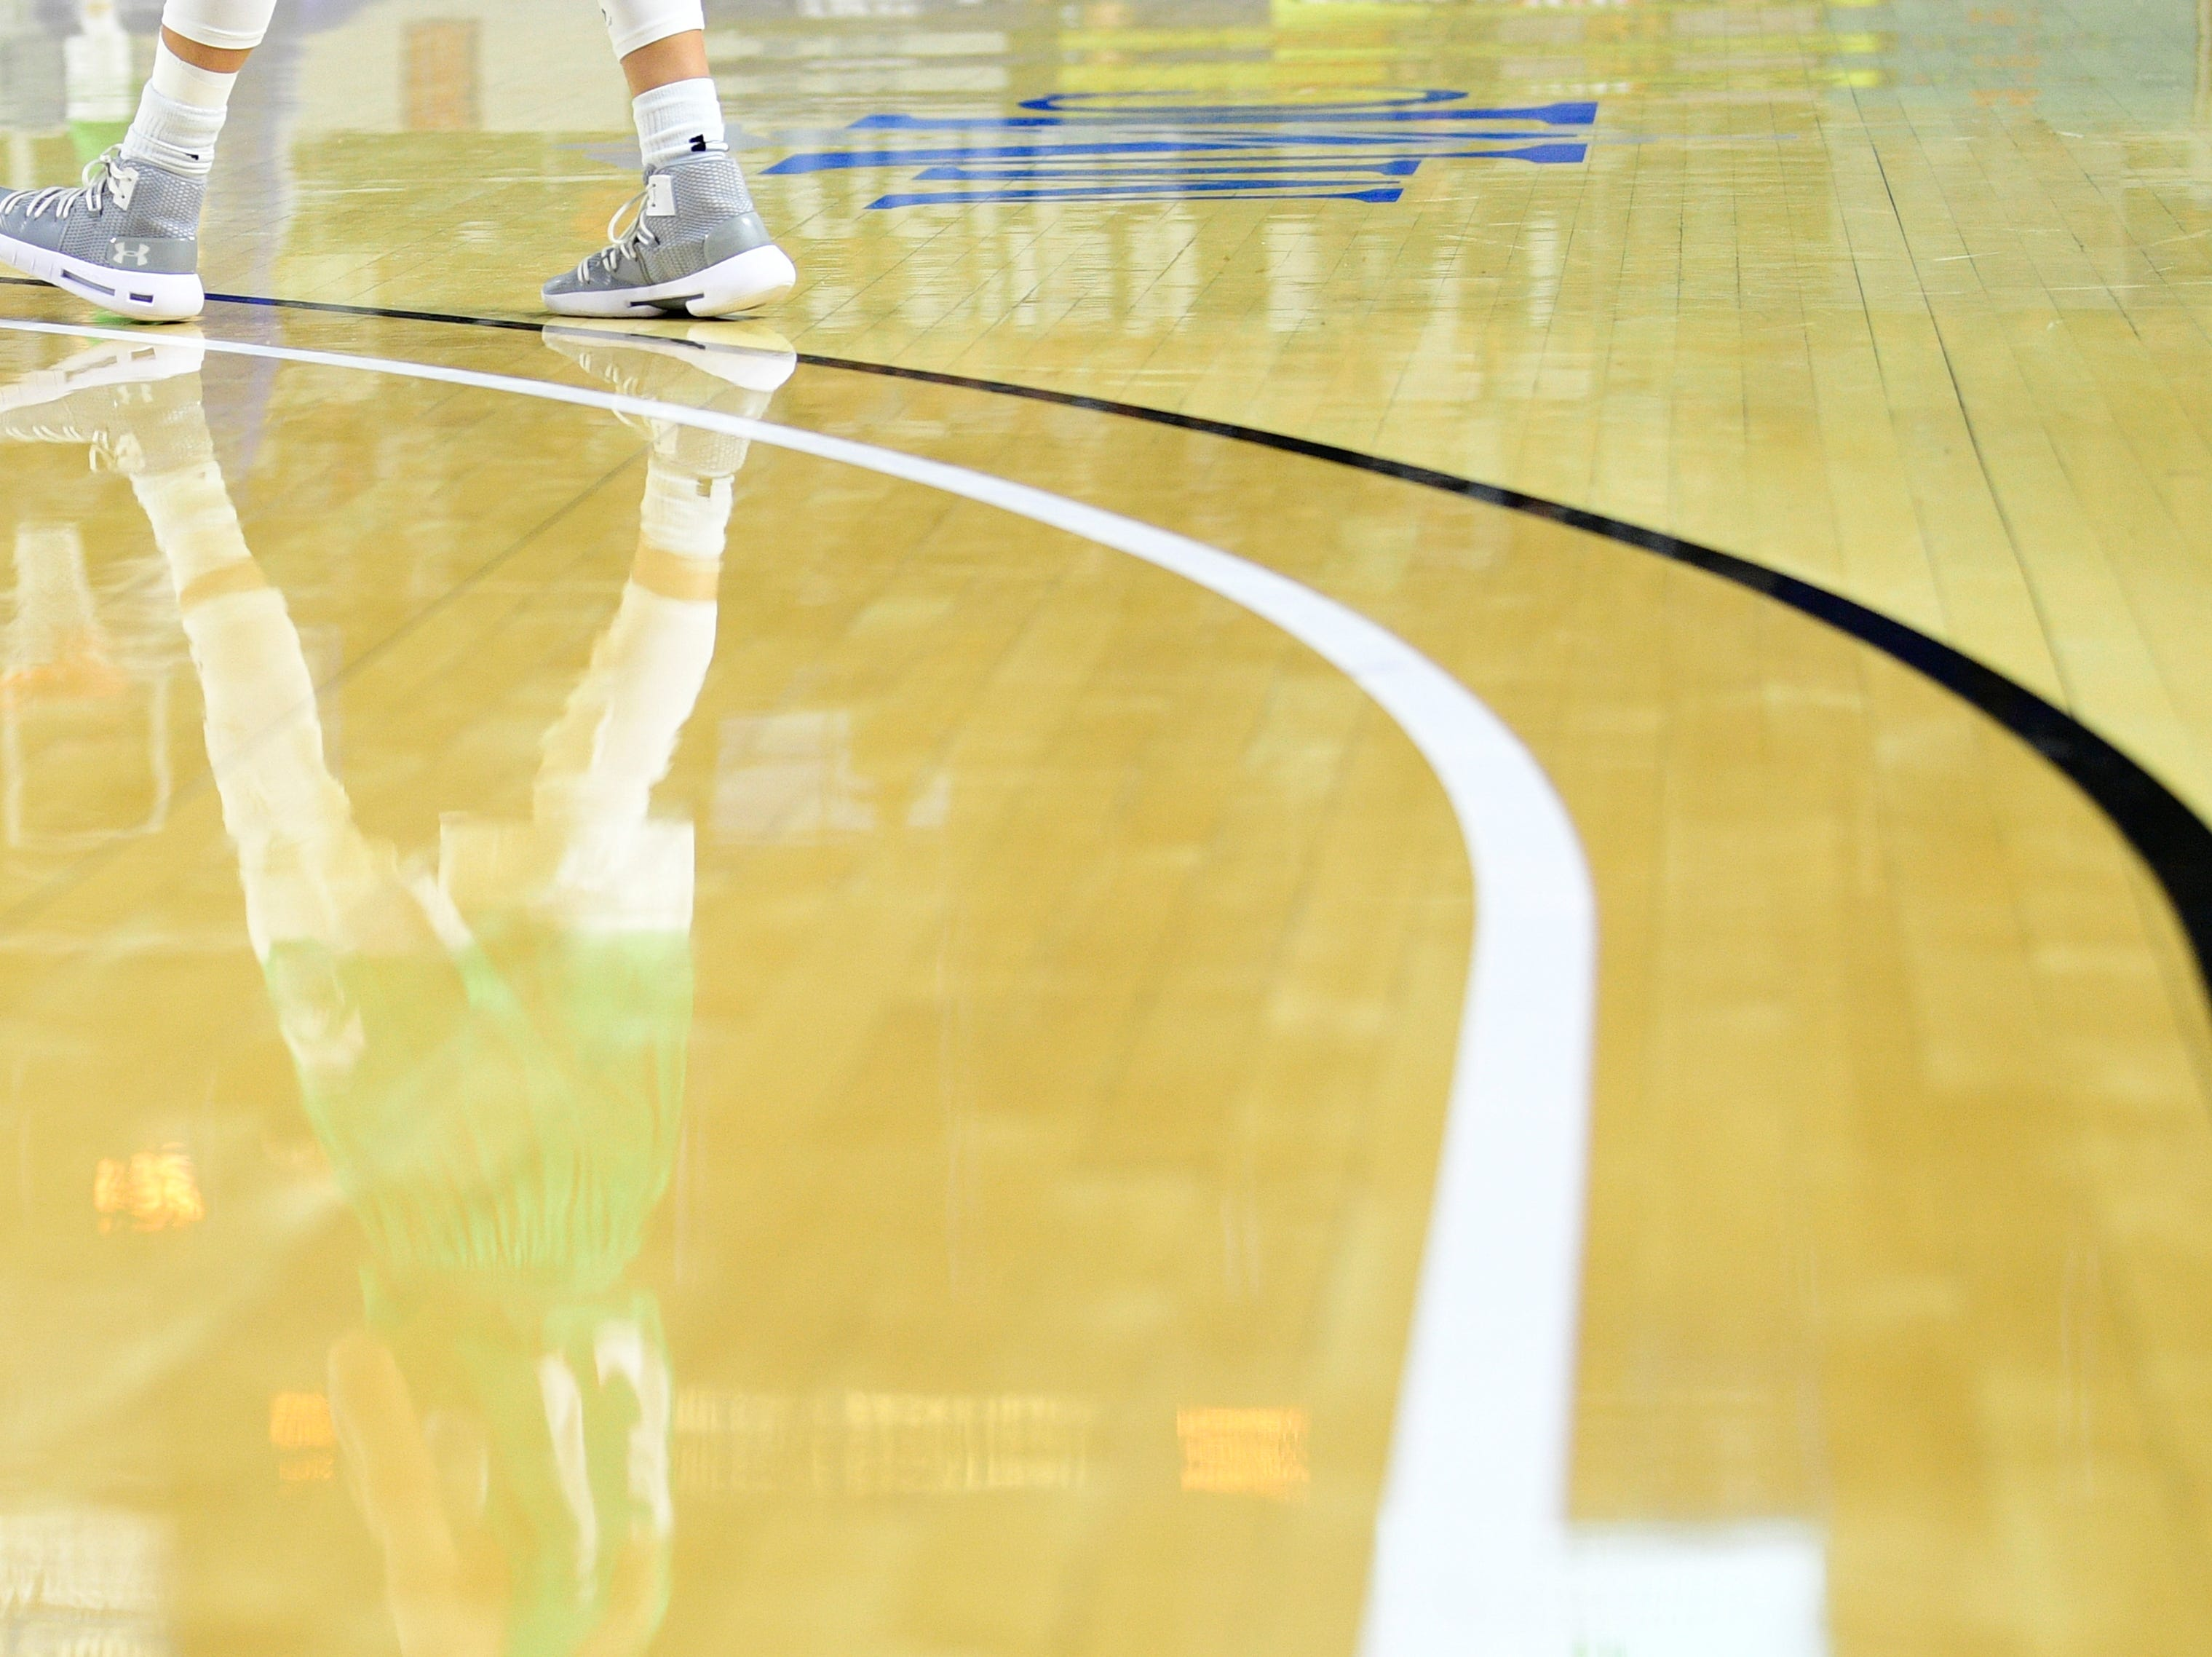 A player walks down the court during a game between Eagleville and Midway at the TSSAA girls state tournament at the Murphy Center in Murfreesboro, Tennessee on Thursday, March 7, 2019.